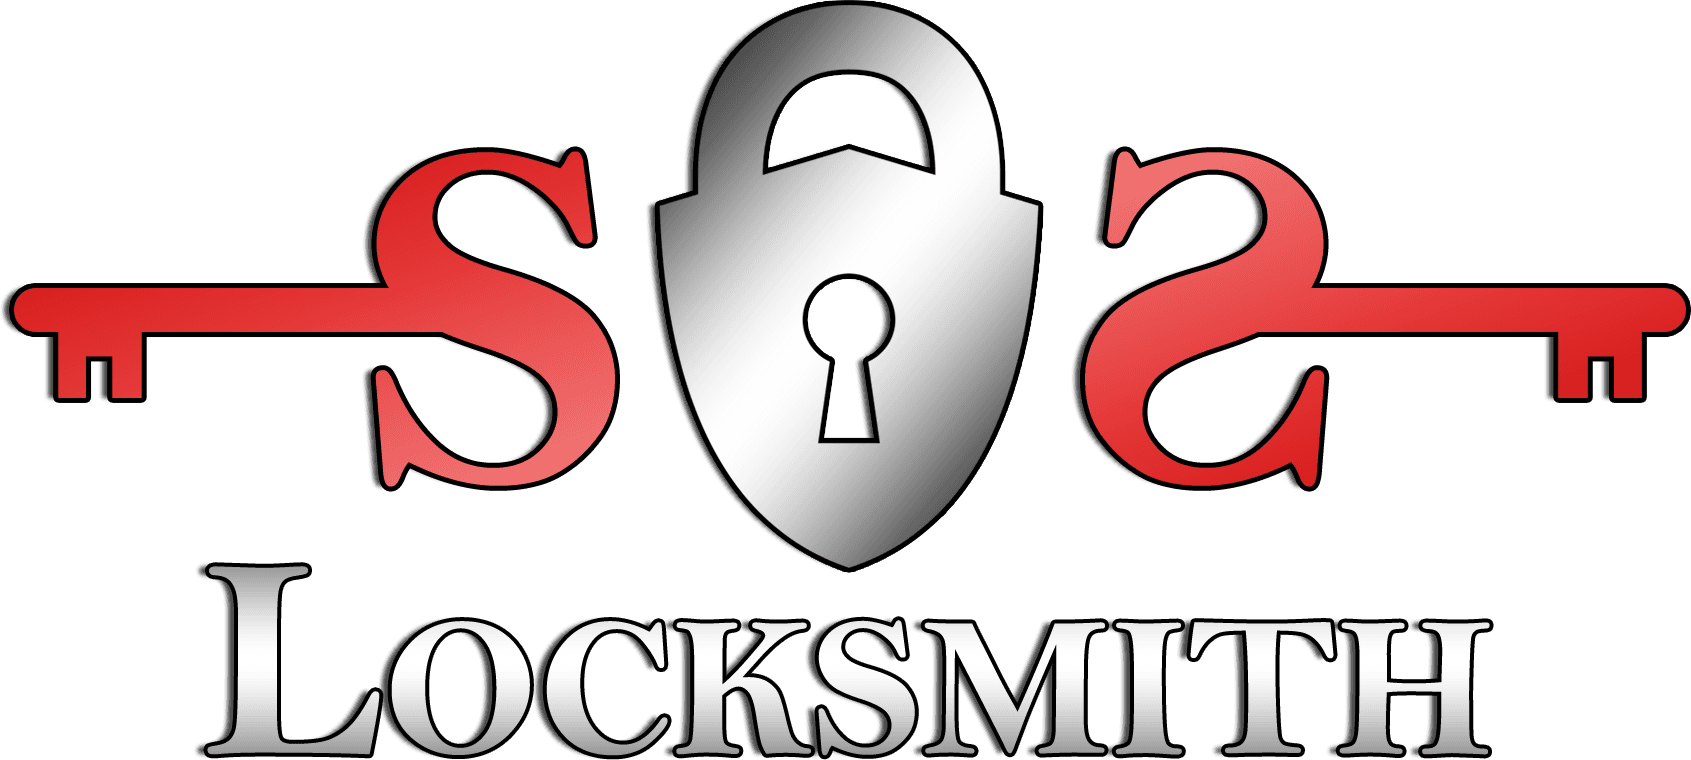 SOS Locksmith Dallas Logo